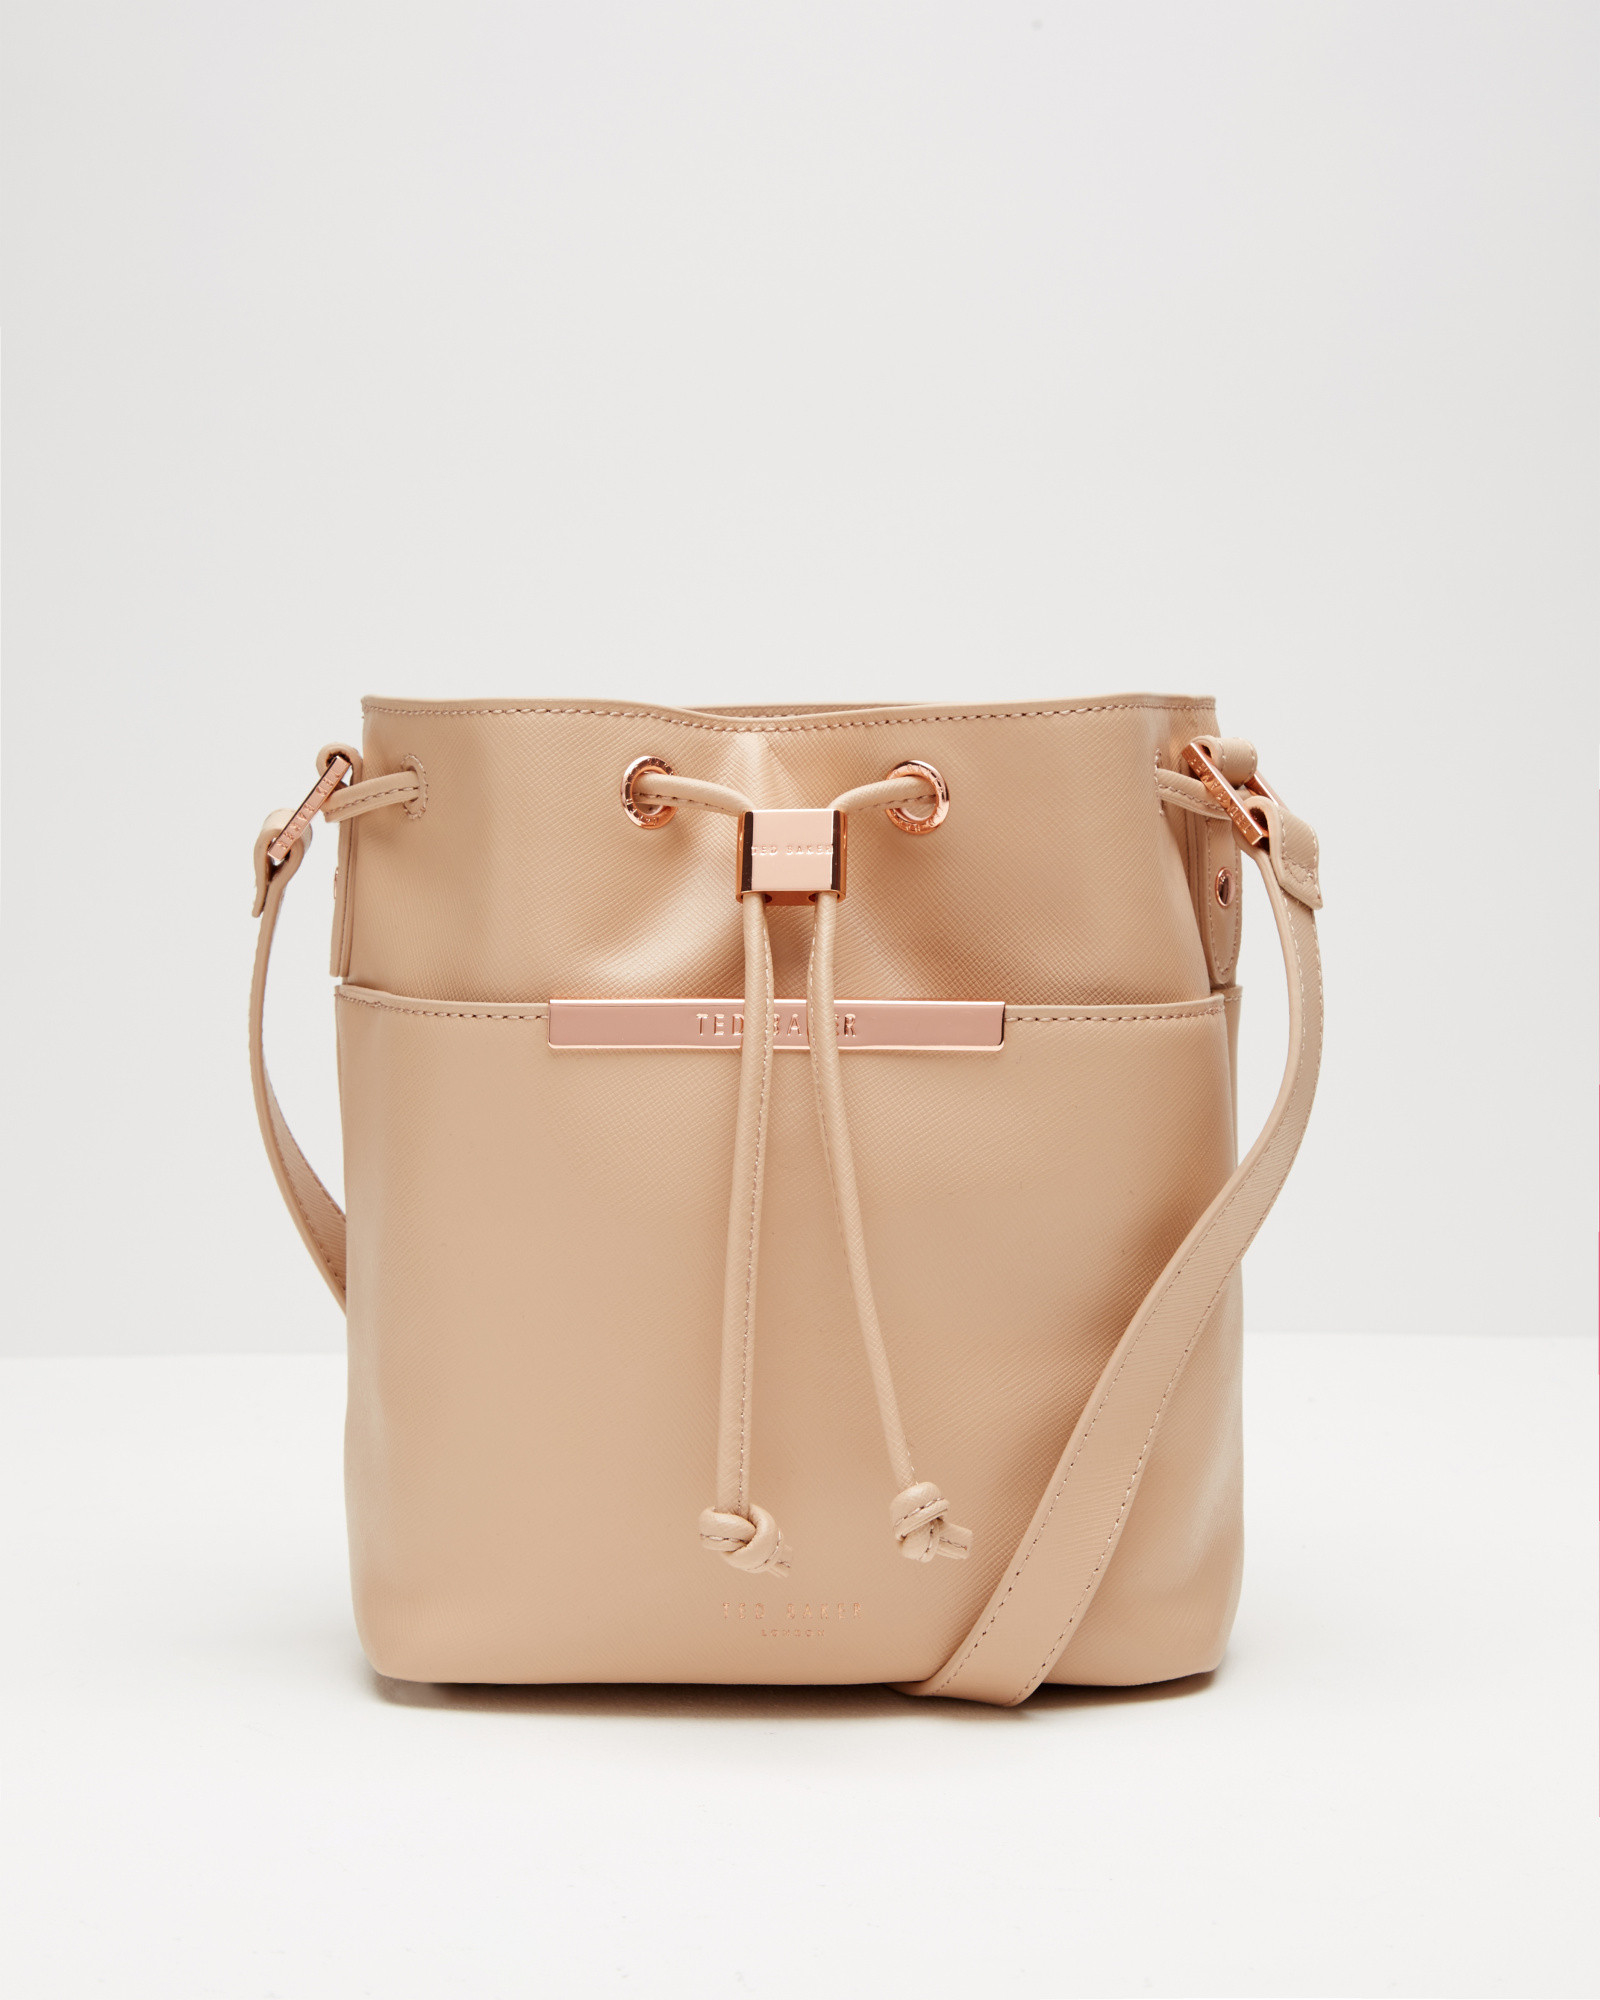 9708038ca1c972 Ted Baker Crosshatch Leather Mini Bucket Bag in Brown - Lyst